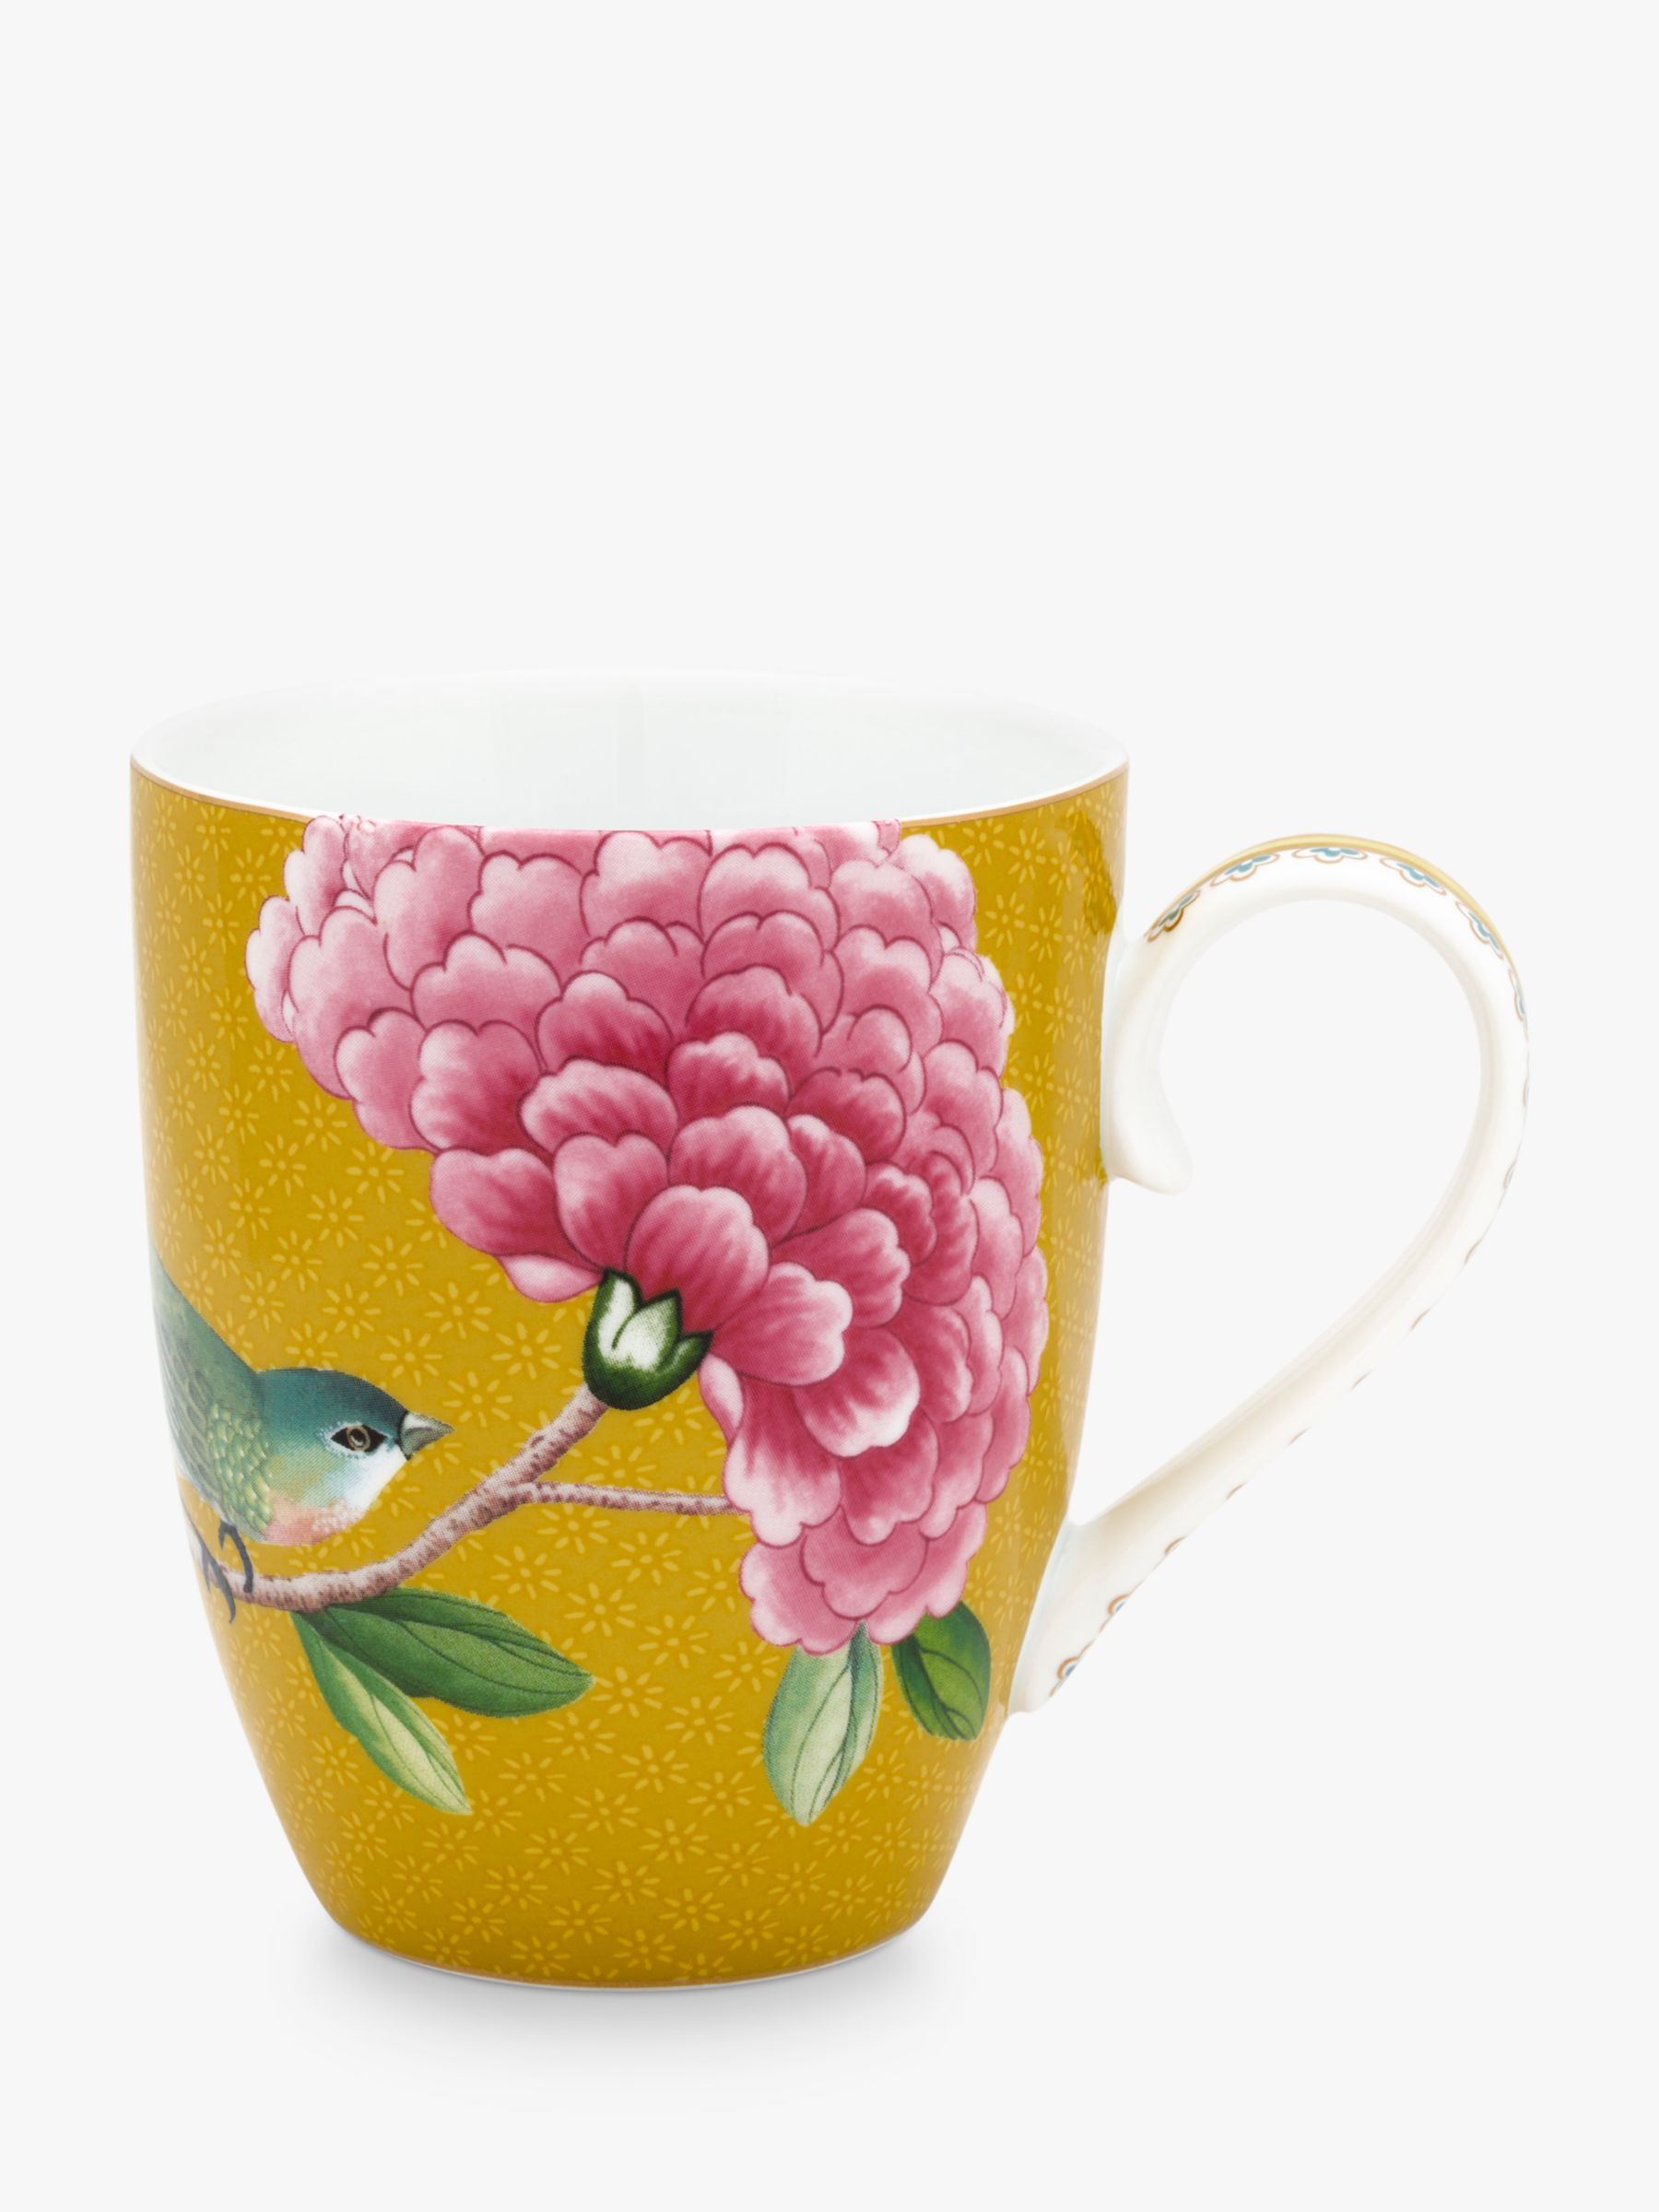 PiP Studio PiP Studio Blushing Birds Large Mug, 350ml